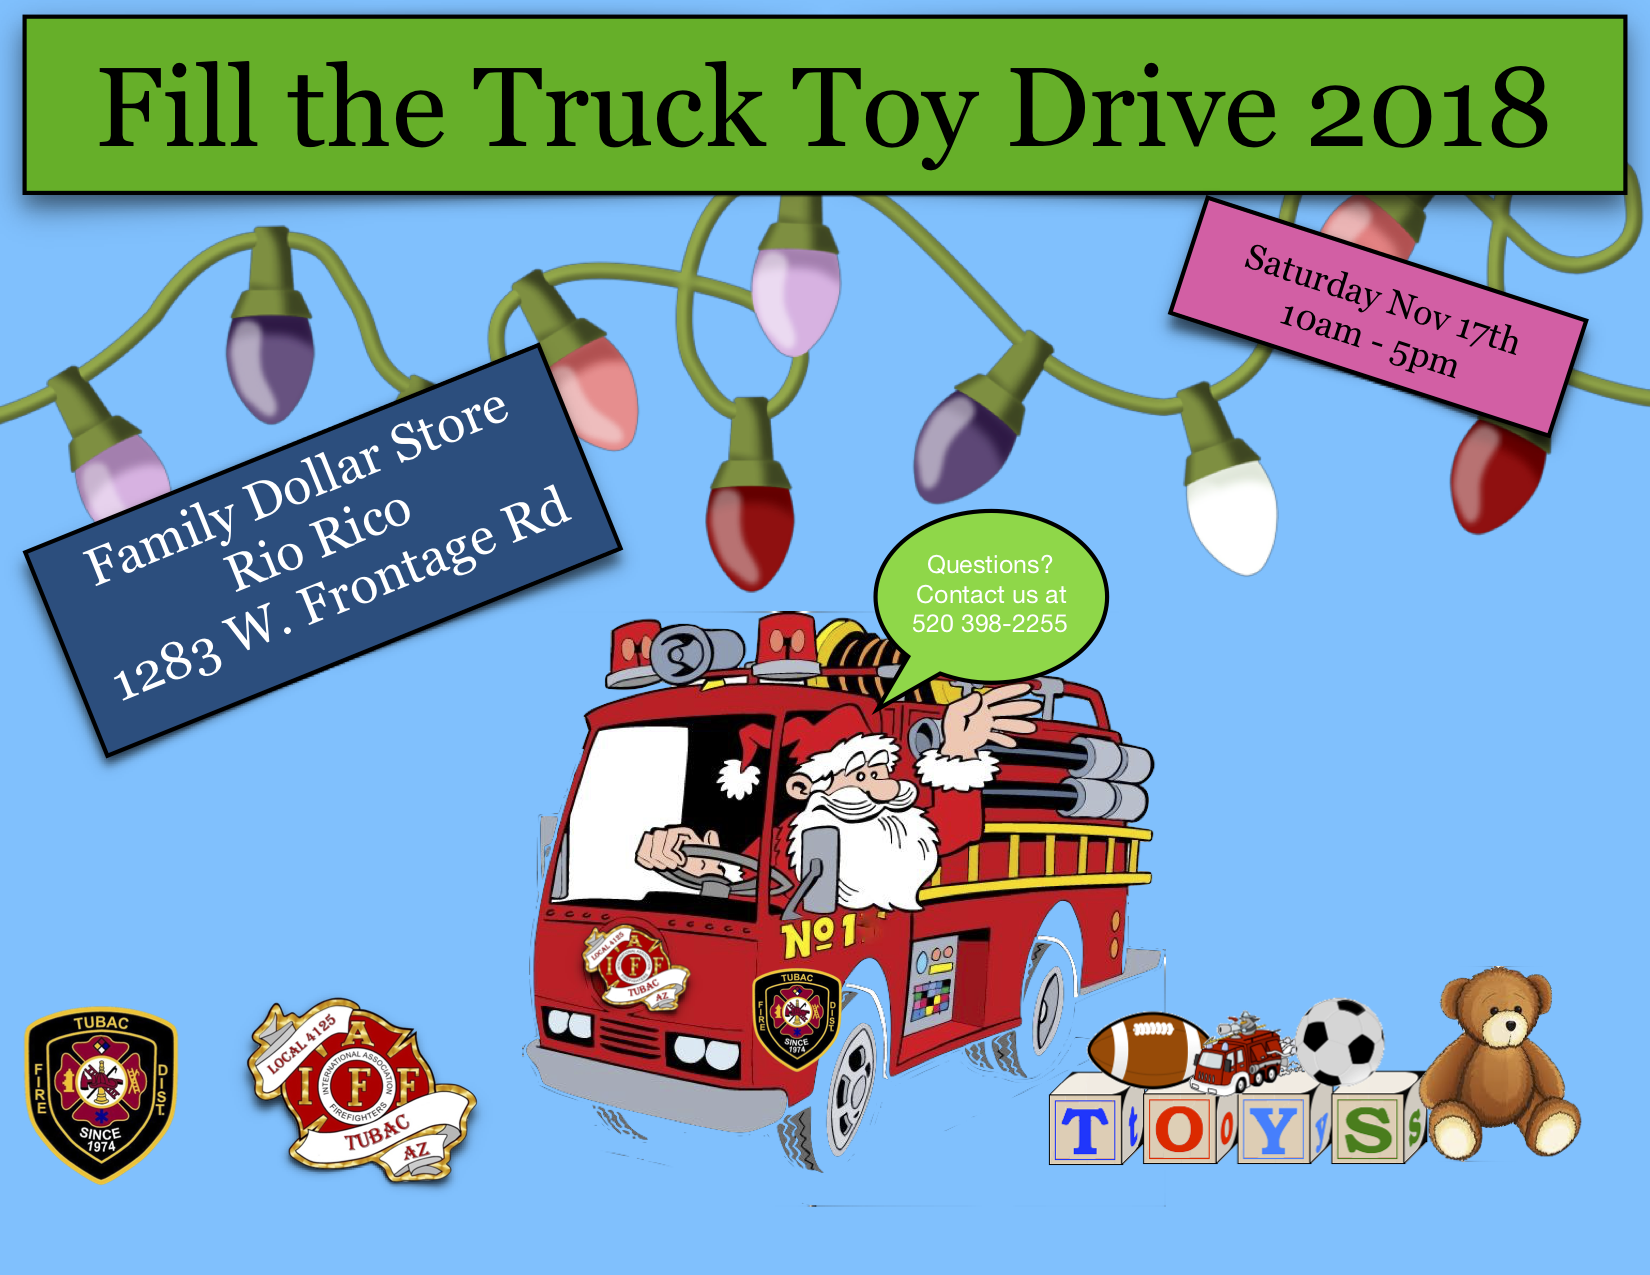 Fill the Truck 2018